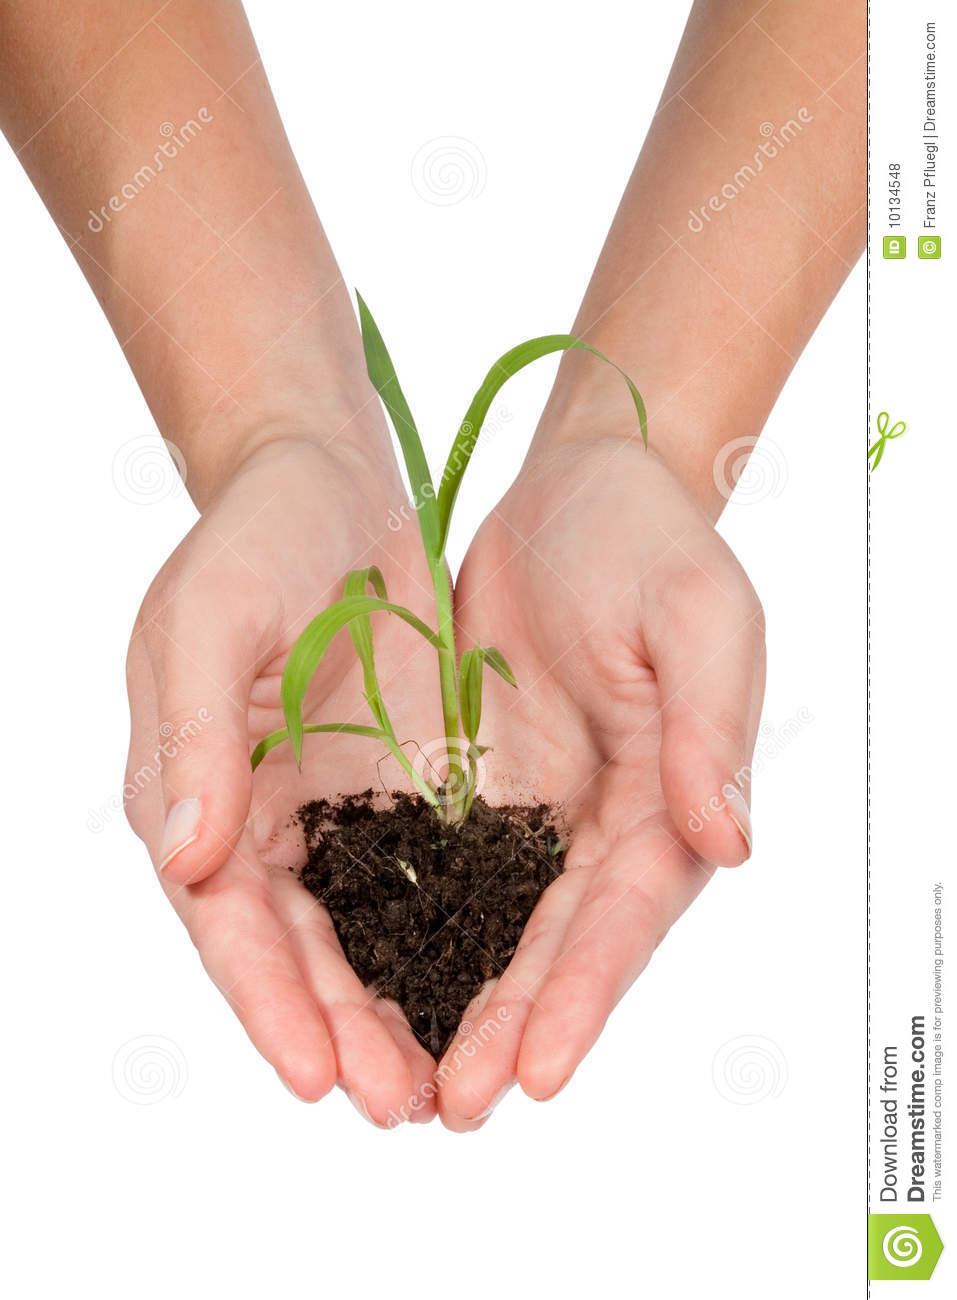 Plant royalty free stock photos image 10134548 for Ohrensessel 2 hand